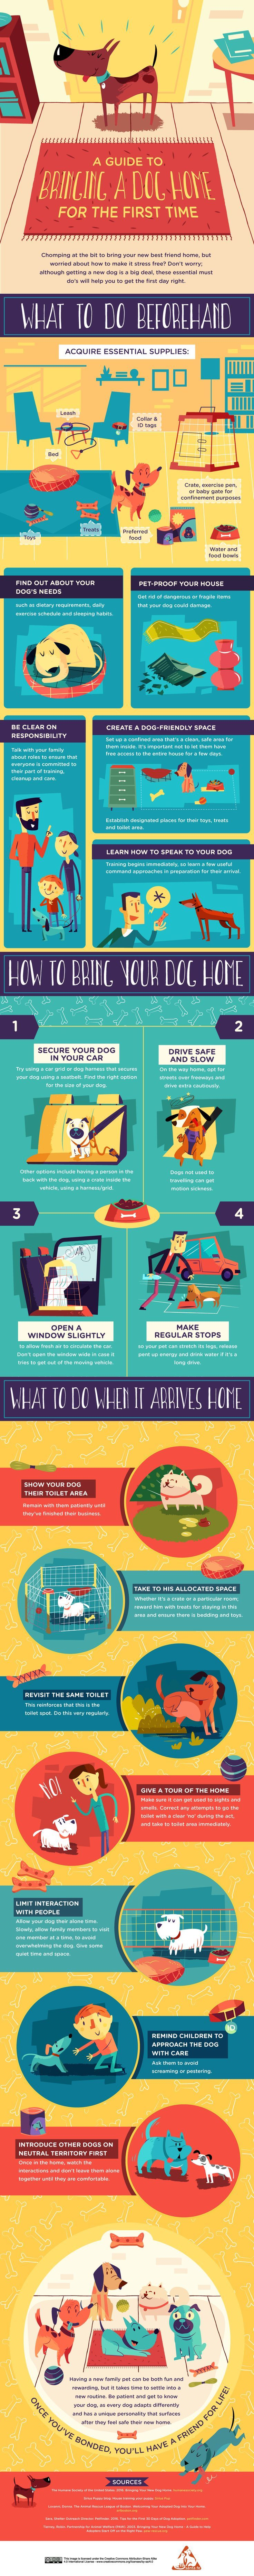 Bringing a dog home for the first time may seem easy, but there's a lot to consider. This graphic from the Santa Fe Animal Shelter is a quick primer to what you need to know and consider before your first furry companion comes home with you.